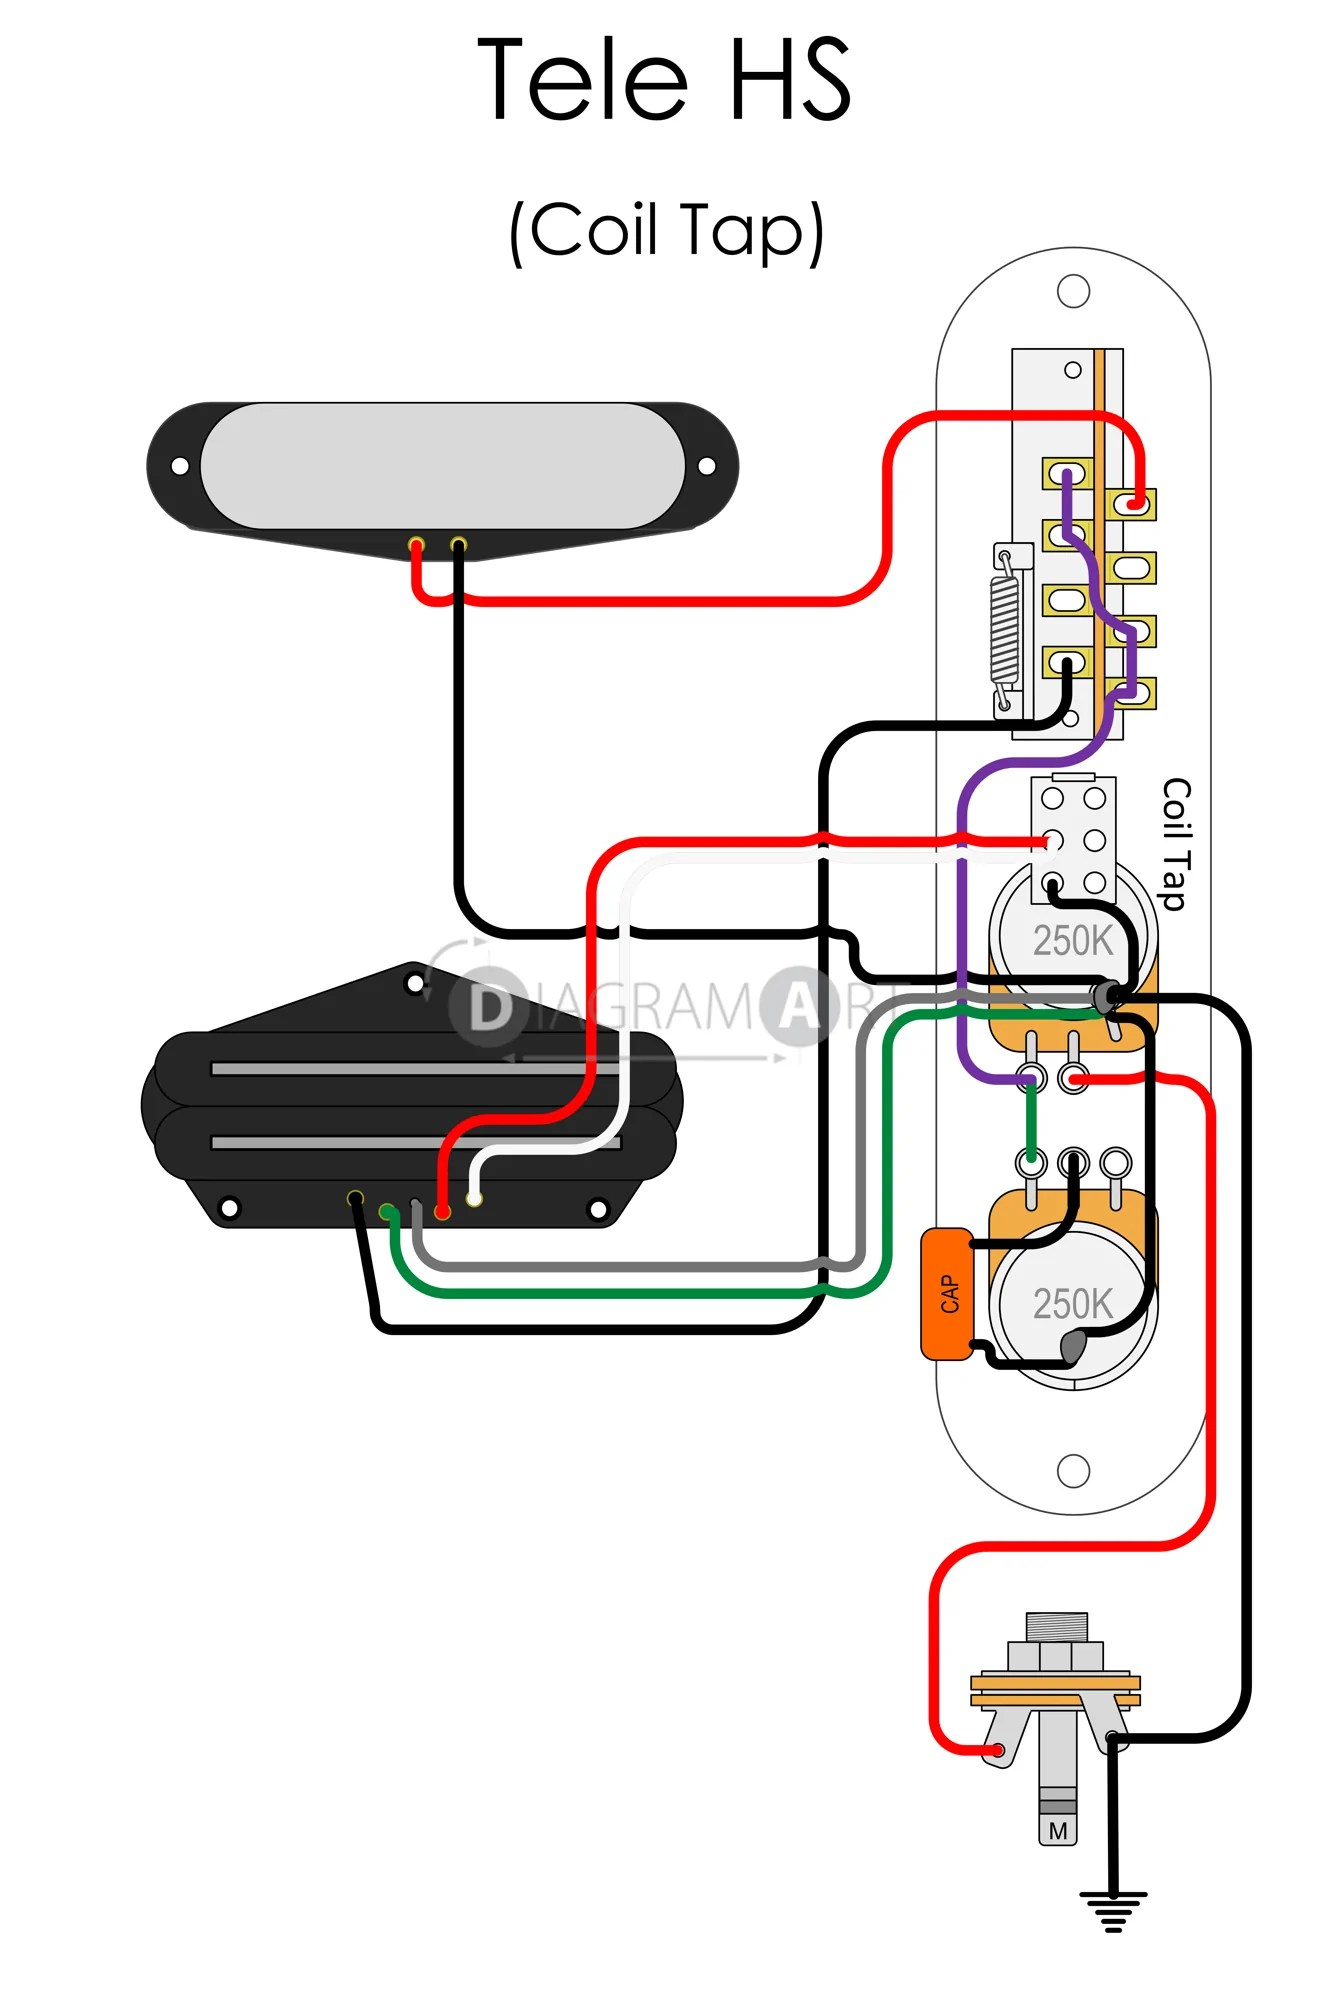 electric guitar wiring tele hs coil tap electric circuit guitar coil tap wiring diagrams [ 1333 x 2000 Pixel ]